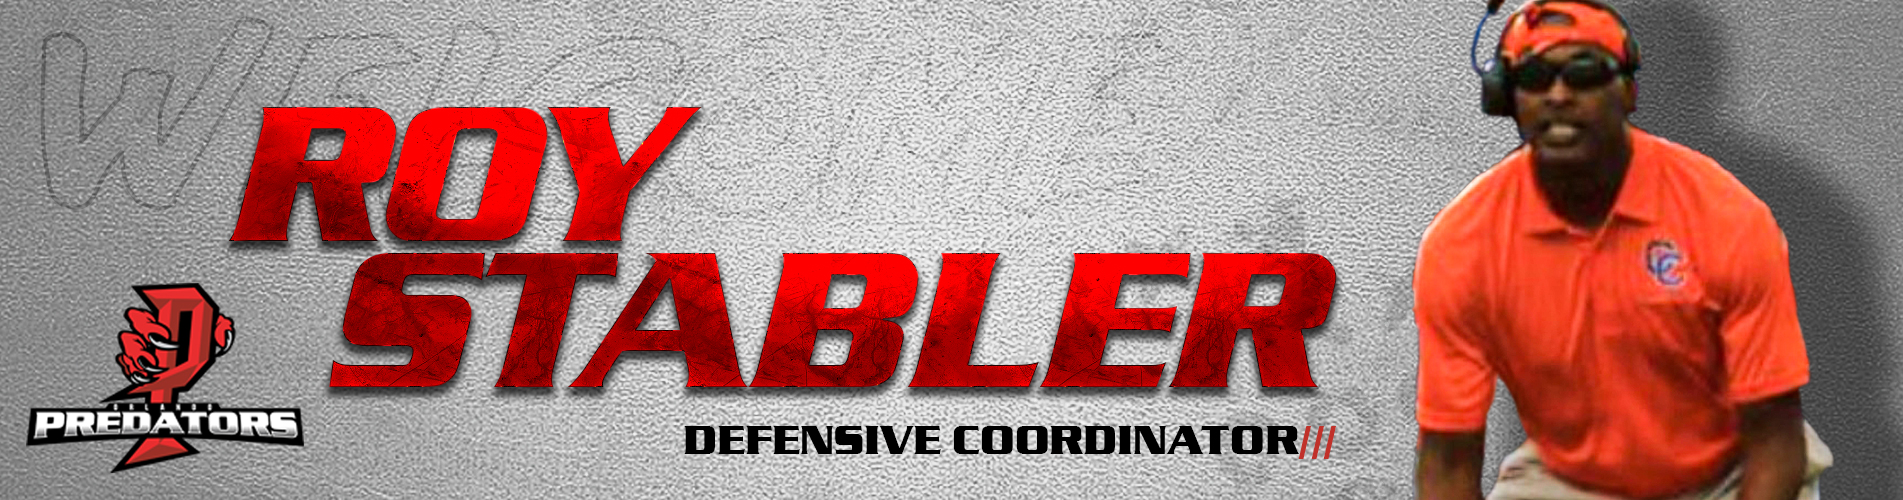 Roy Stabler Defensive Coordinator for Orlando Predators